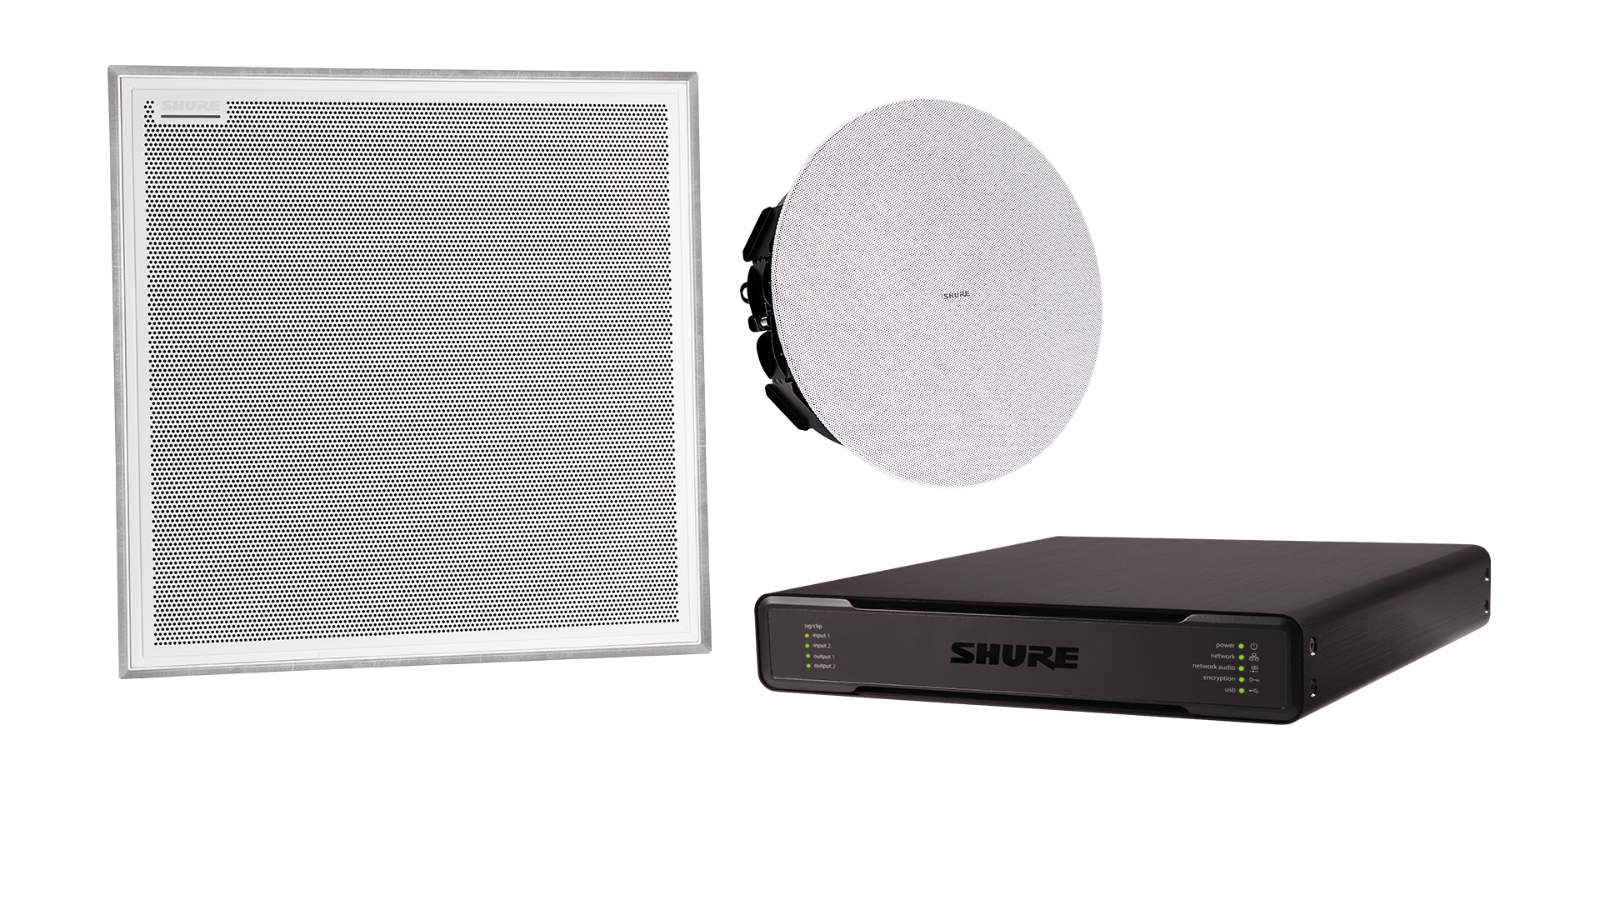 Shure Announces Microflex™ MXN5-C Networked Loudspeaker Is Now Certified For Microsoft Teams